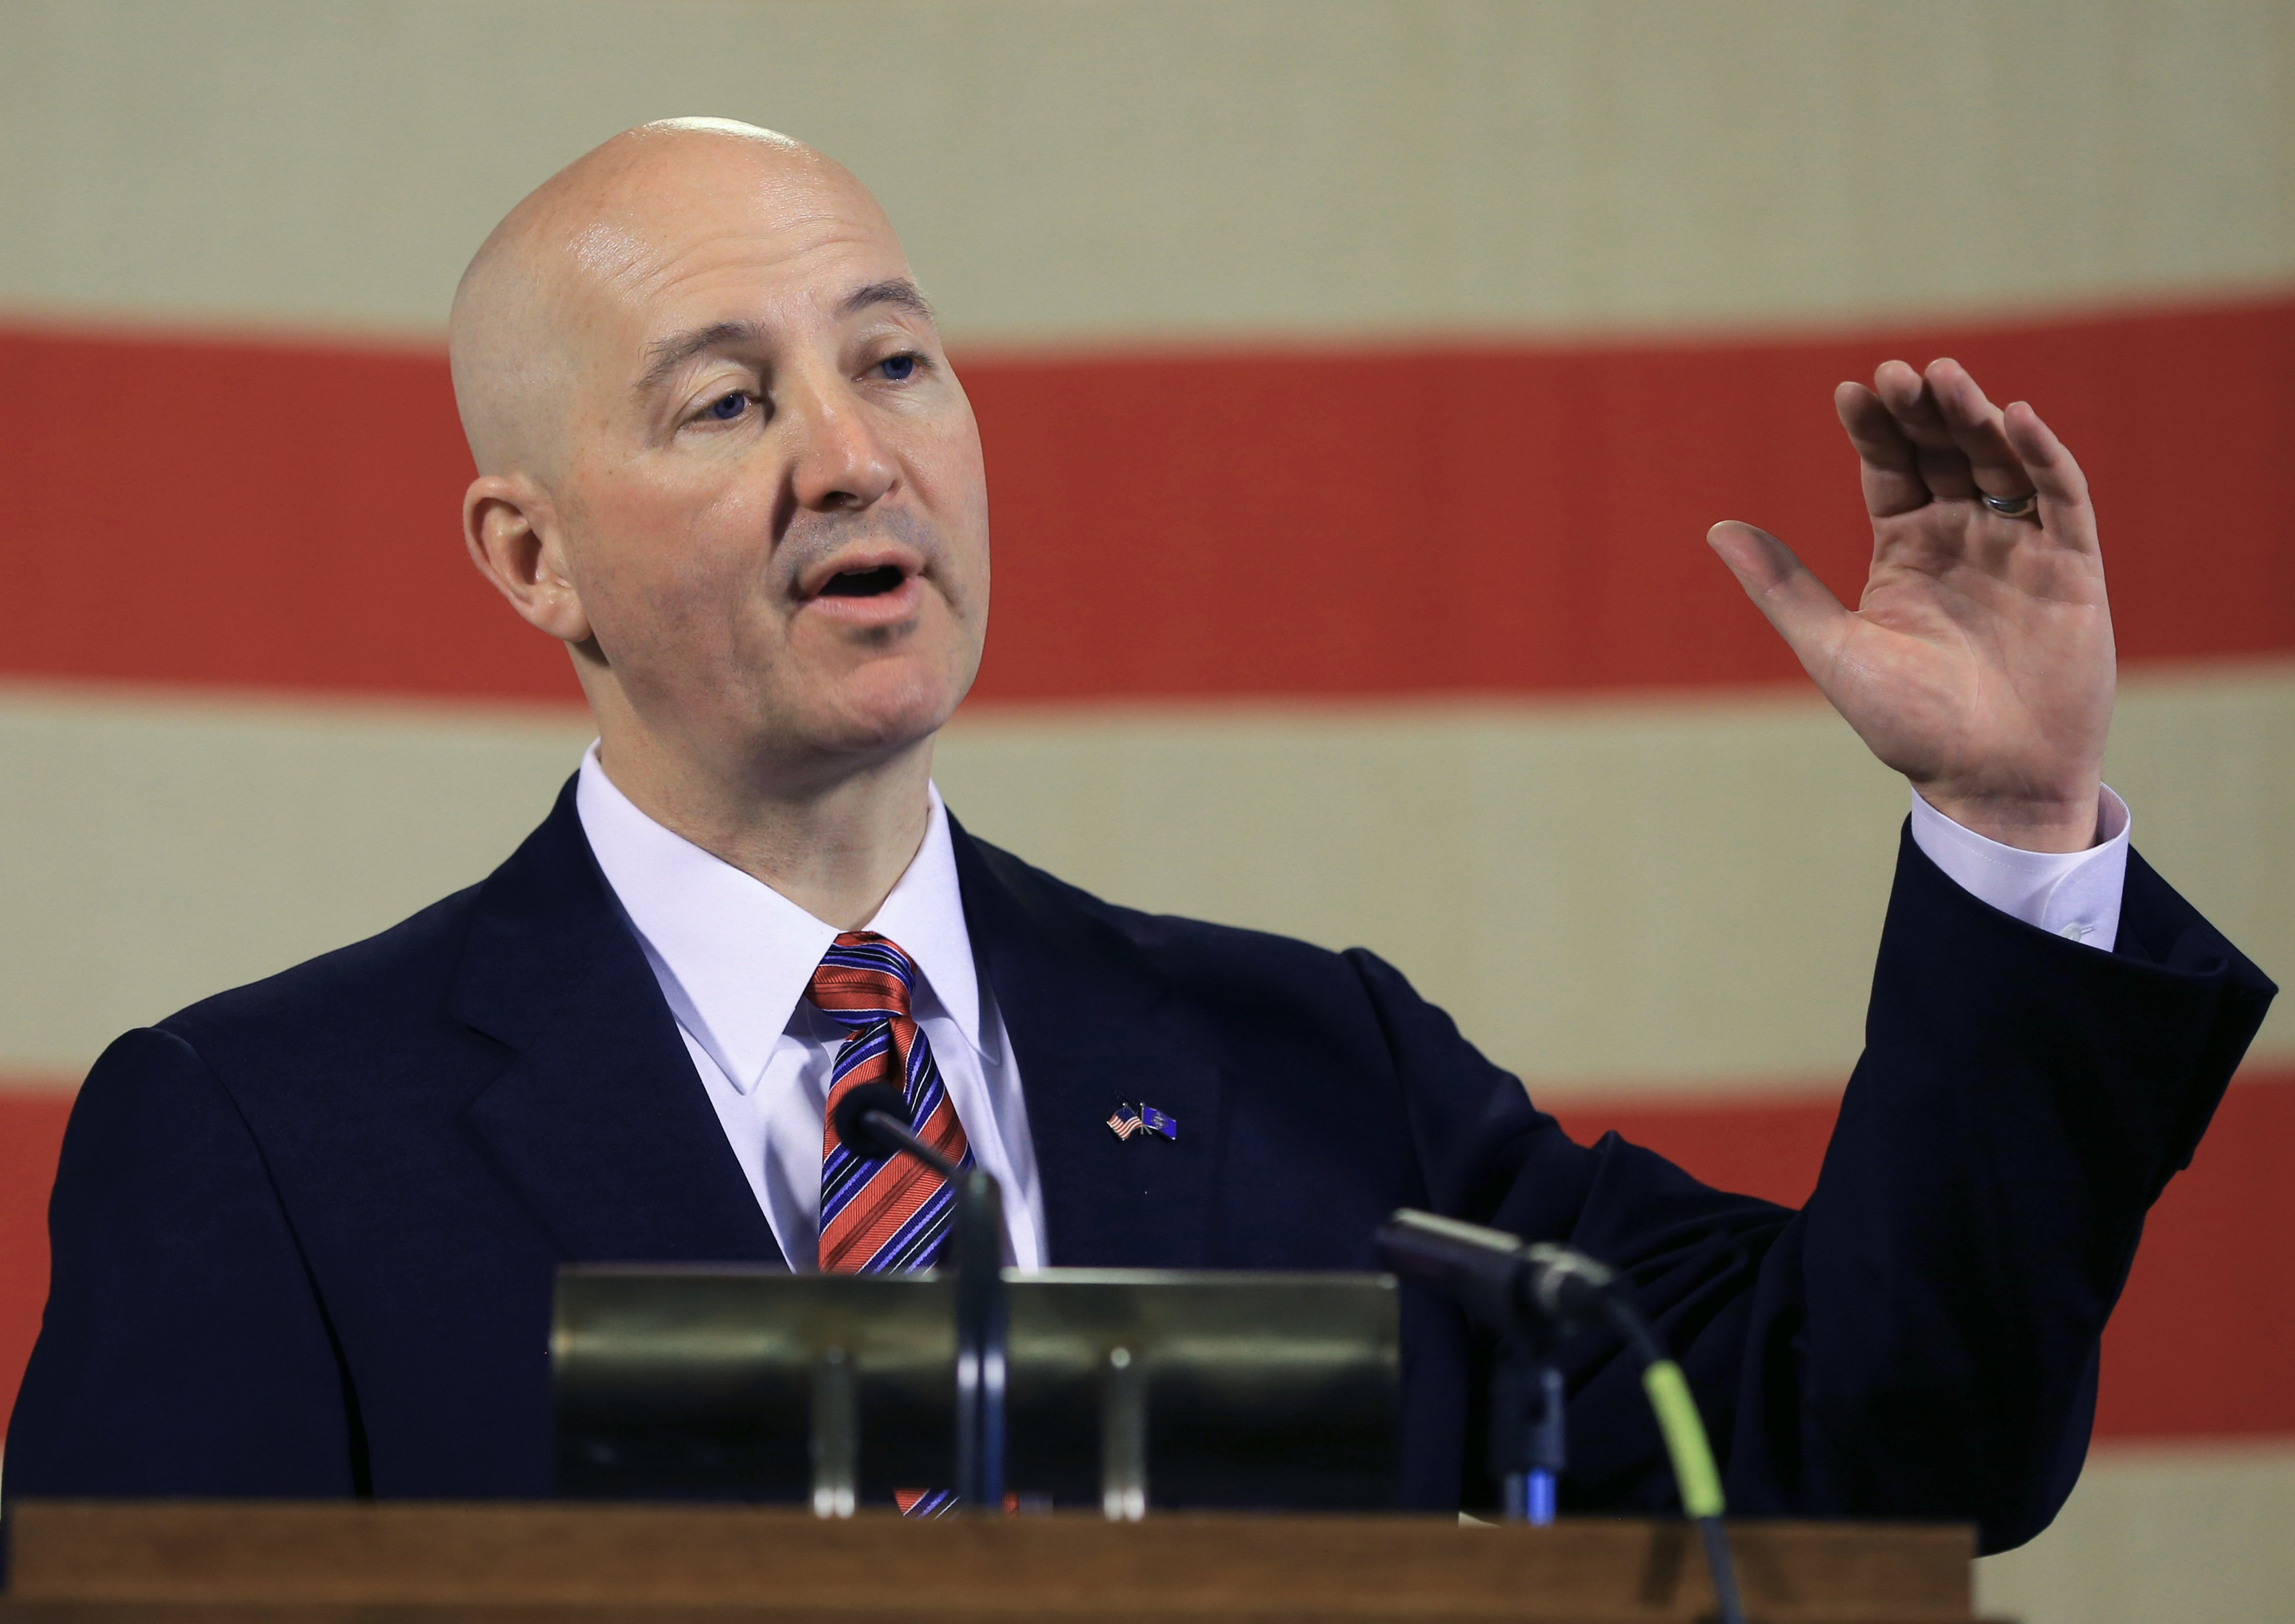 Neb. Gov. Pete Ricketts gestures during a news conference in Lincoln, Neb. on May 20, 2015.